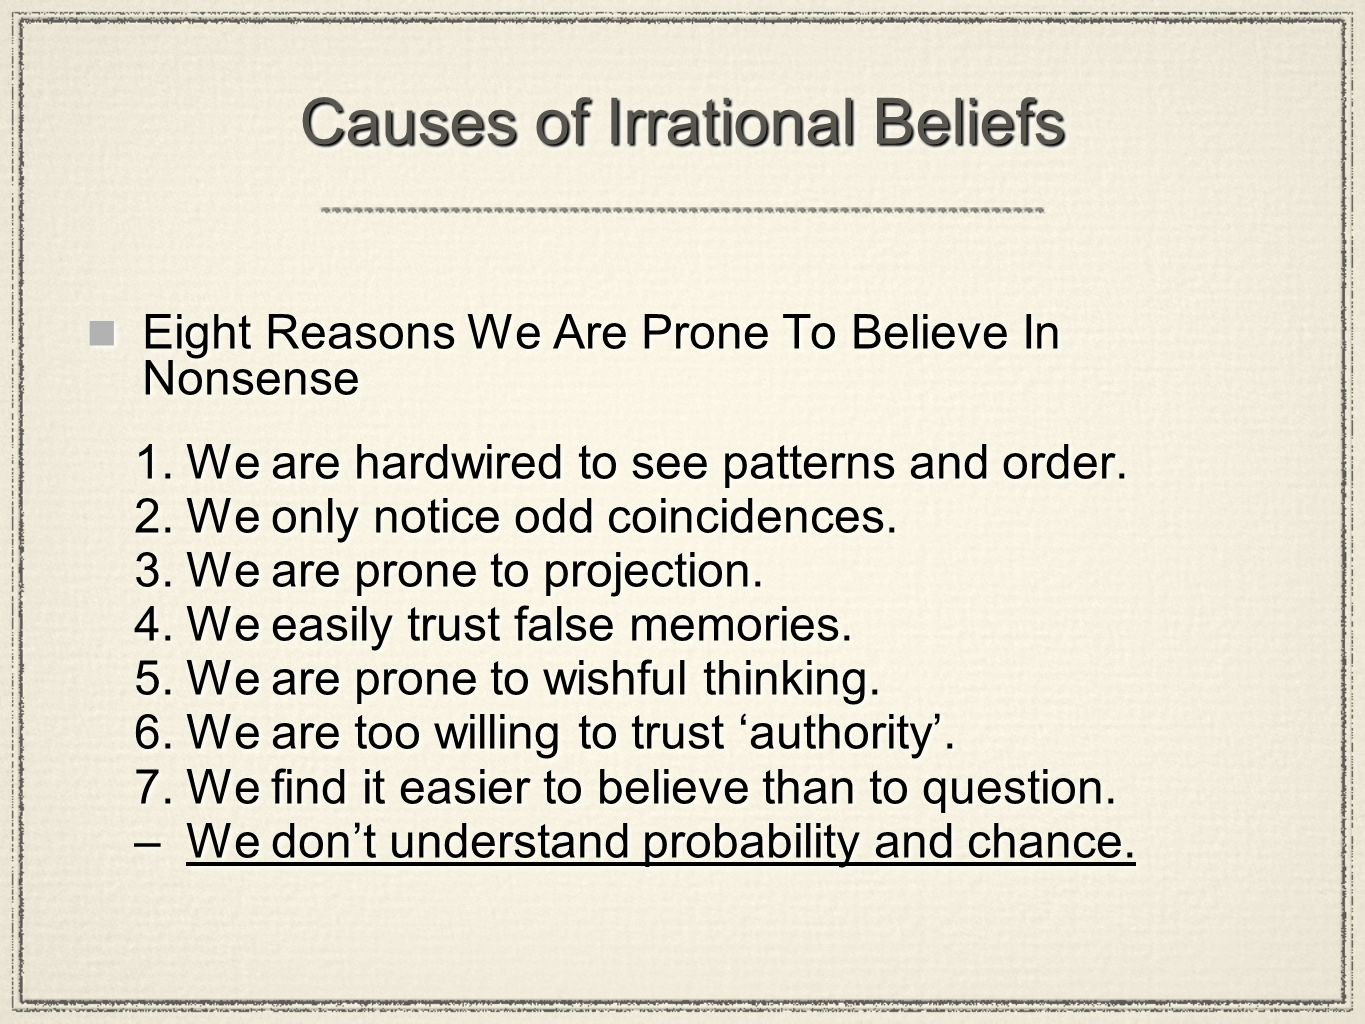 Causes of Irrational Beliefs